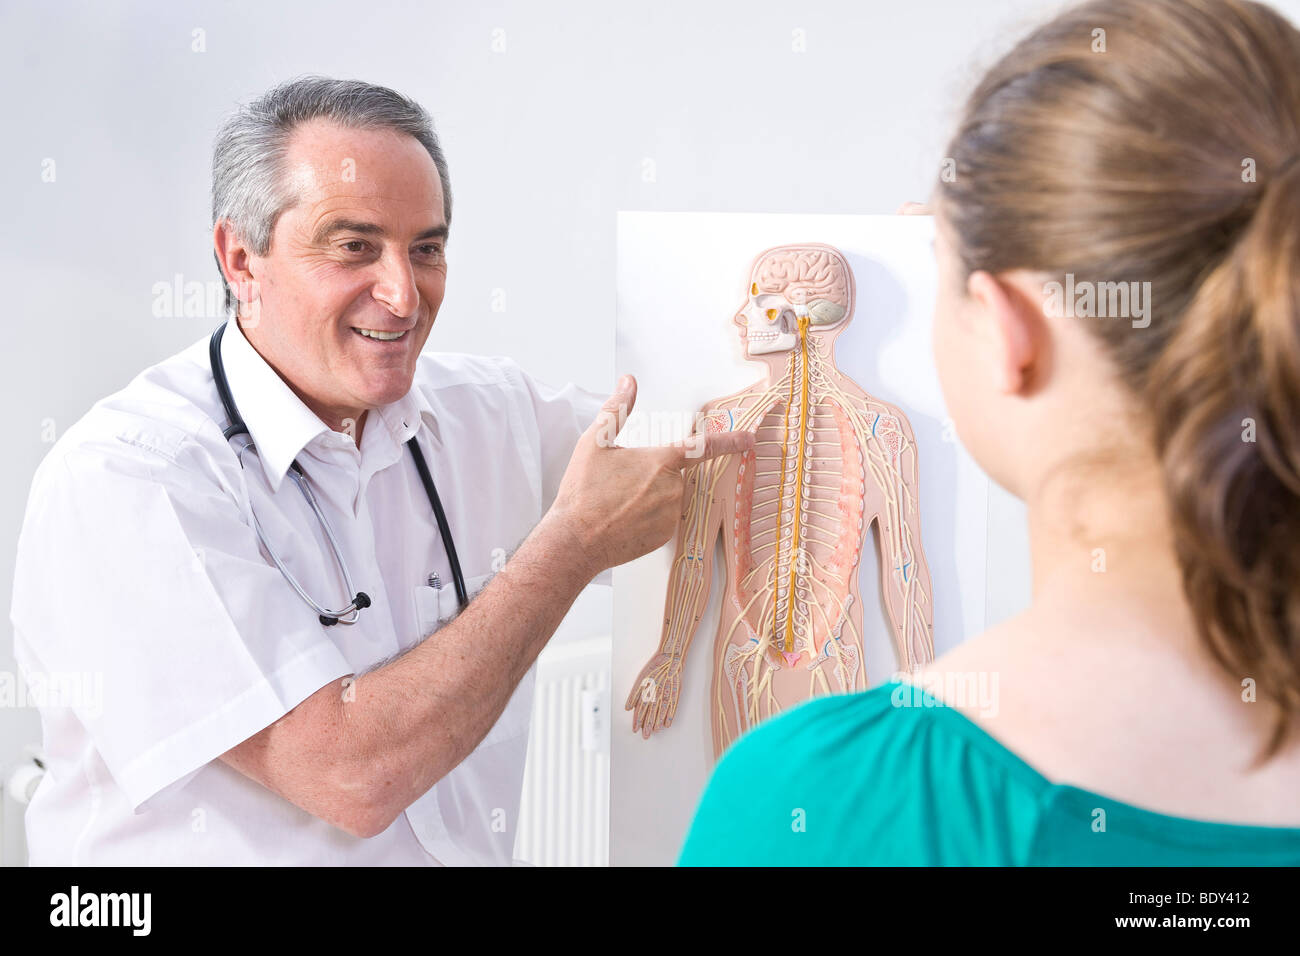 hight resolution of doctor explaining the structure of a human being with a diagram to a young patient